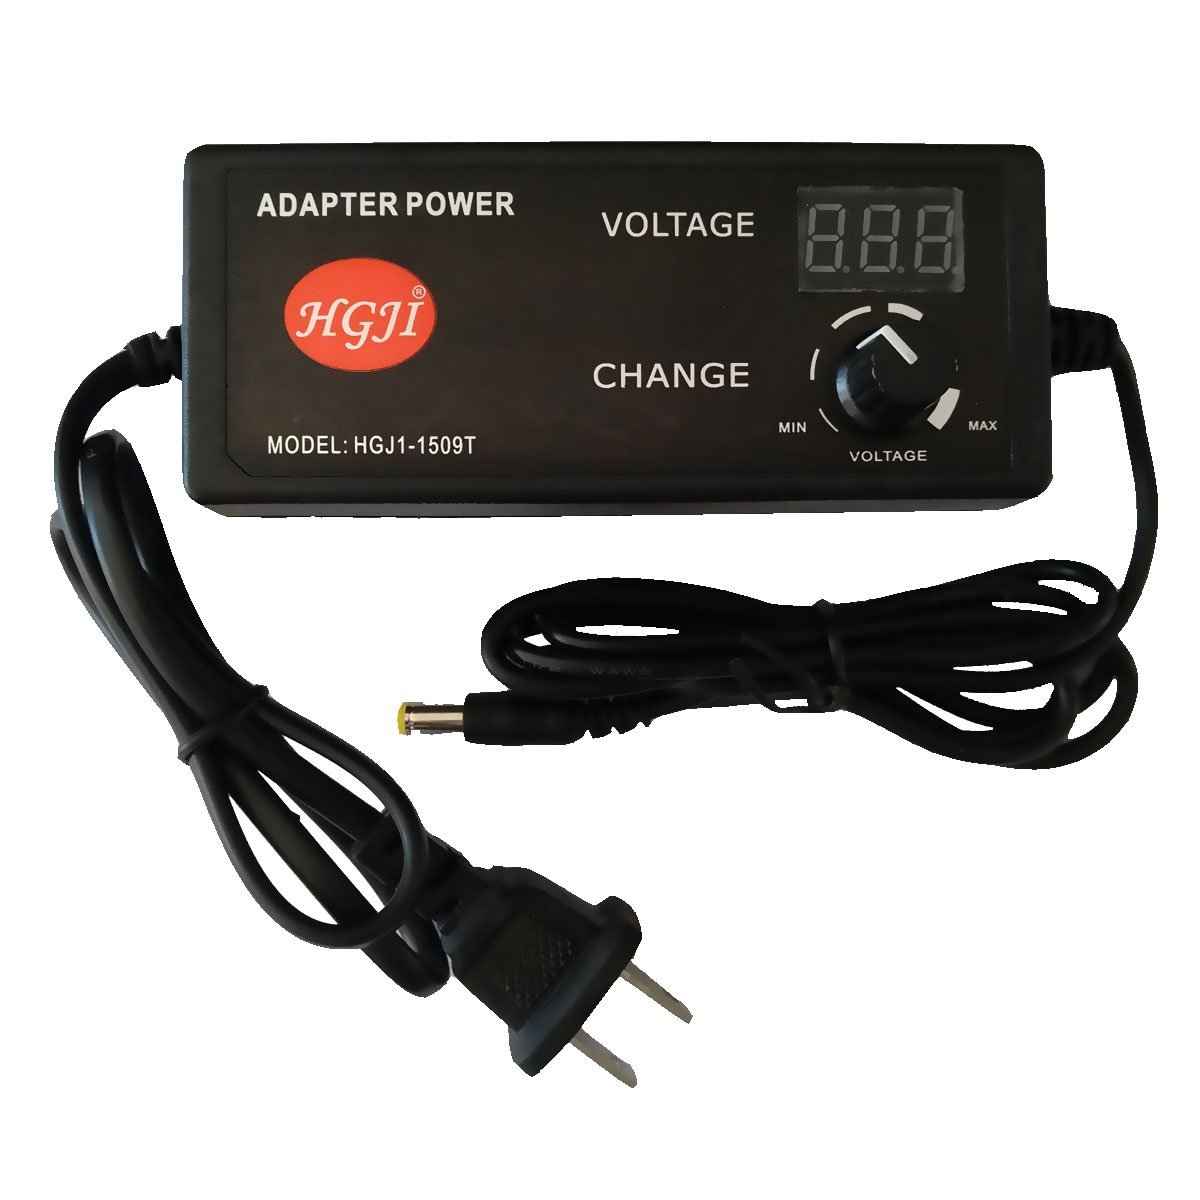 HGJI 60W Adjustable AC/DC Switching power adapter AC 100-240V DC 3.3-24.7V 2.5A 50-60hz With LED Voltage display,Voltage adjustable Suitable for low voltage products US plug